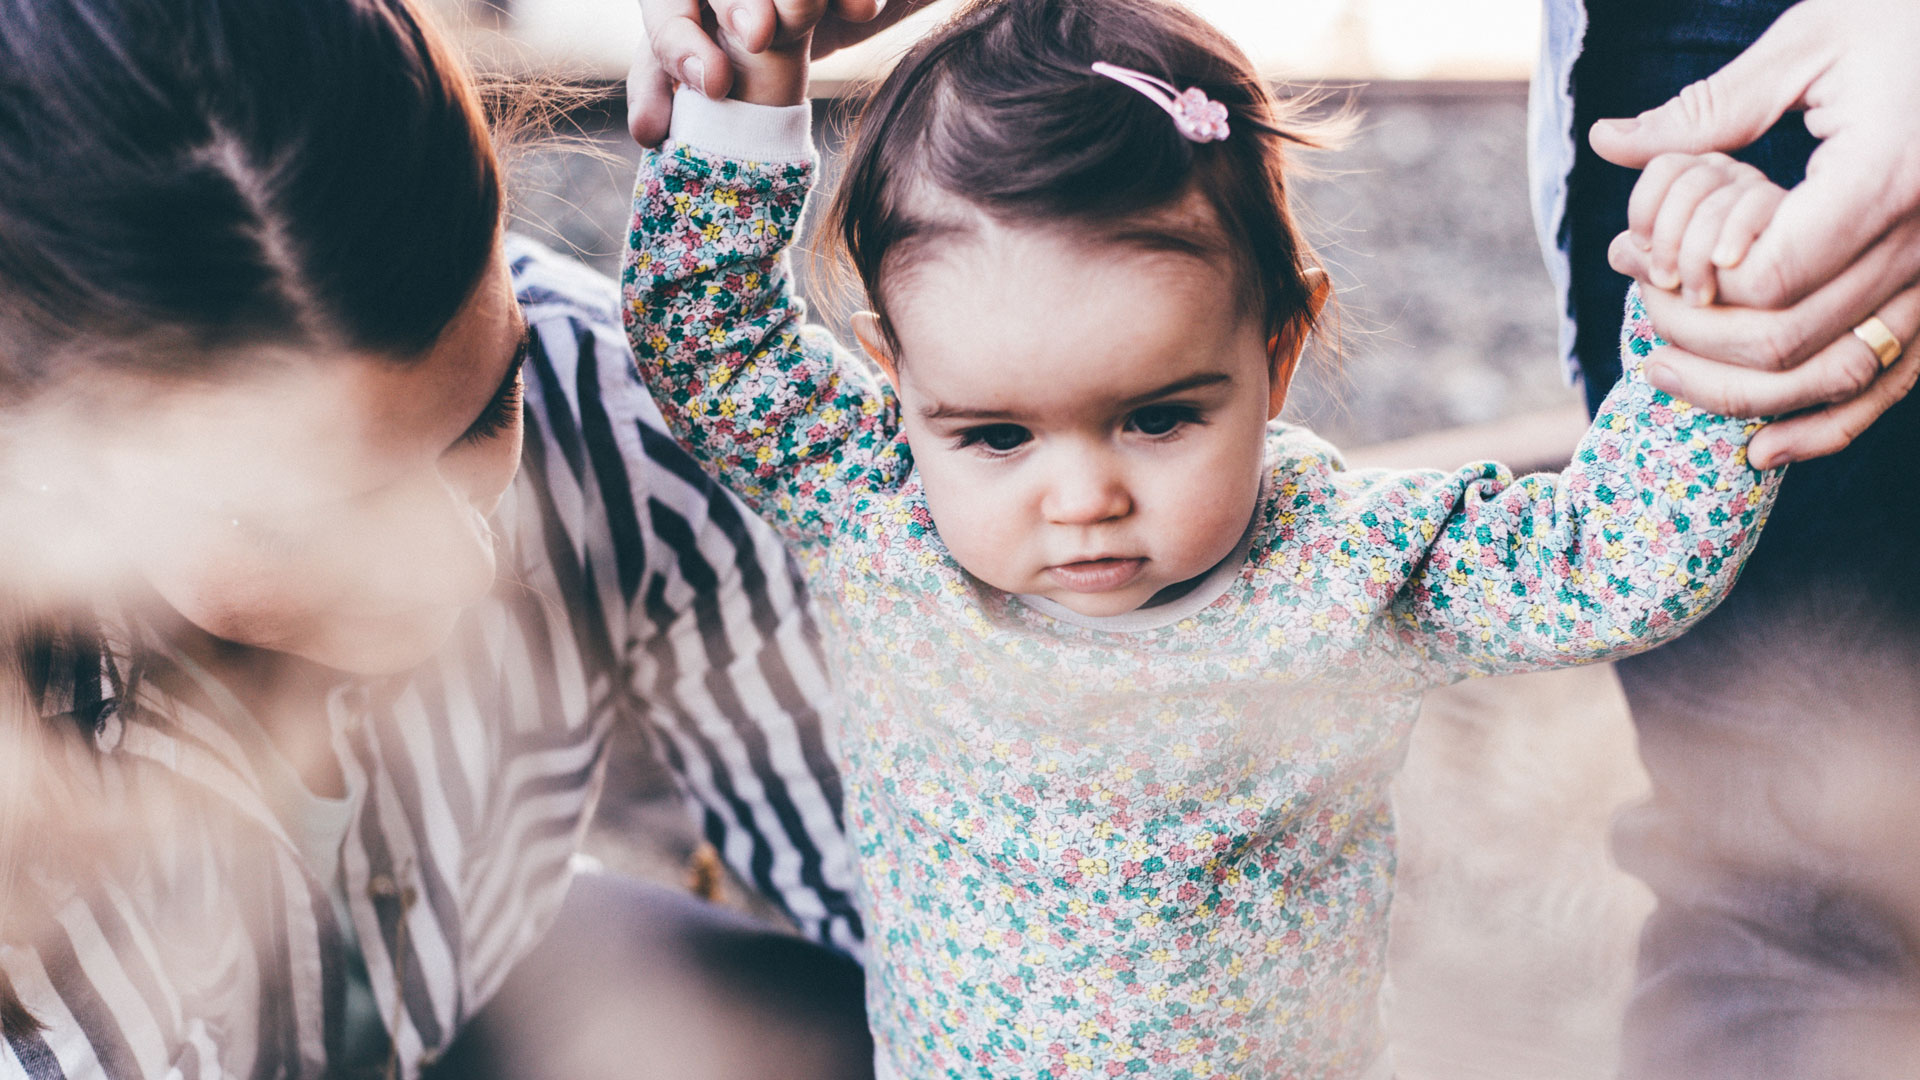 10 THINGS THIS MUM WISHED SHE KNEW BEFORE HAVING KIDS